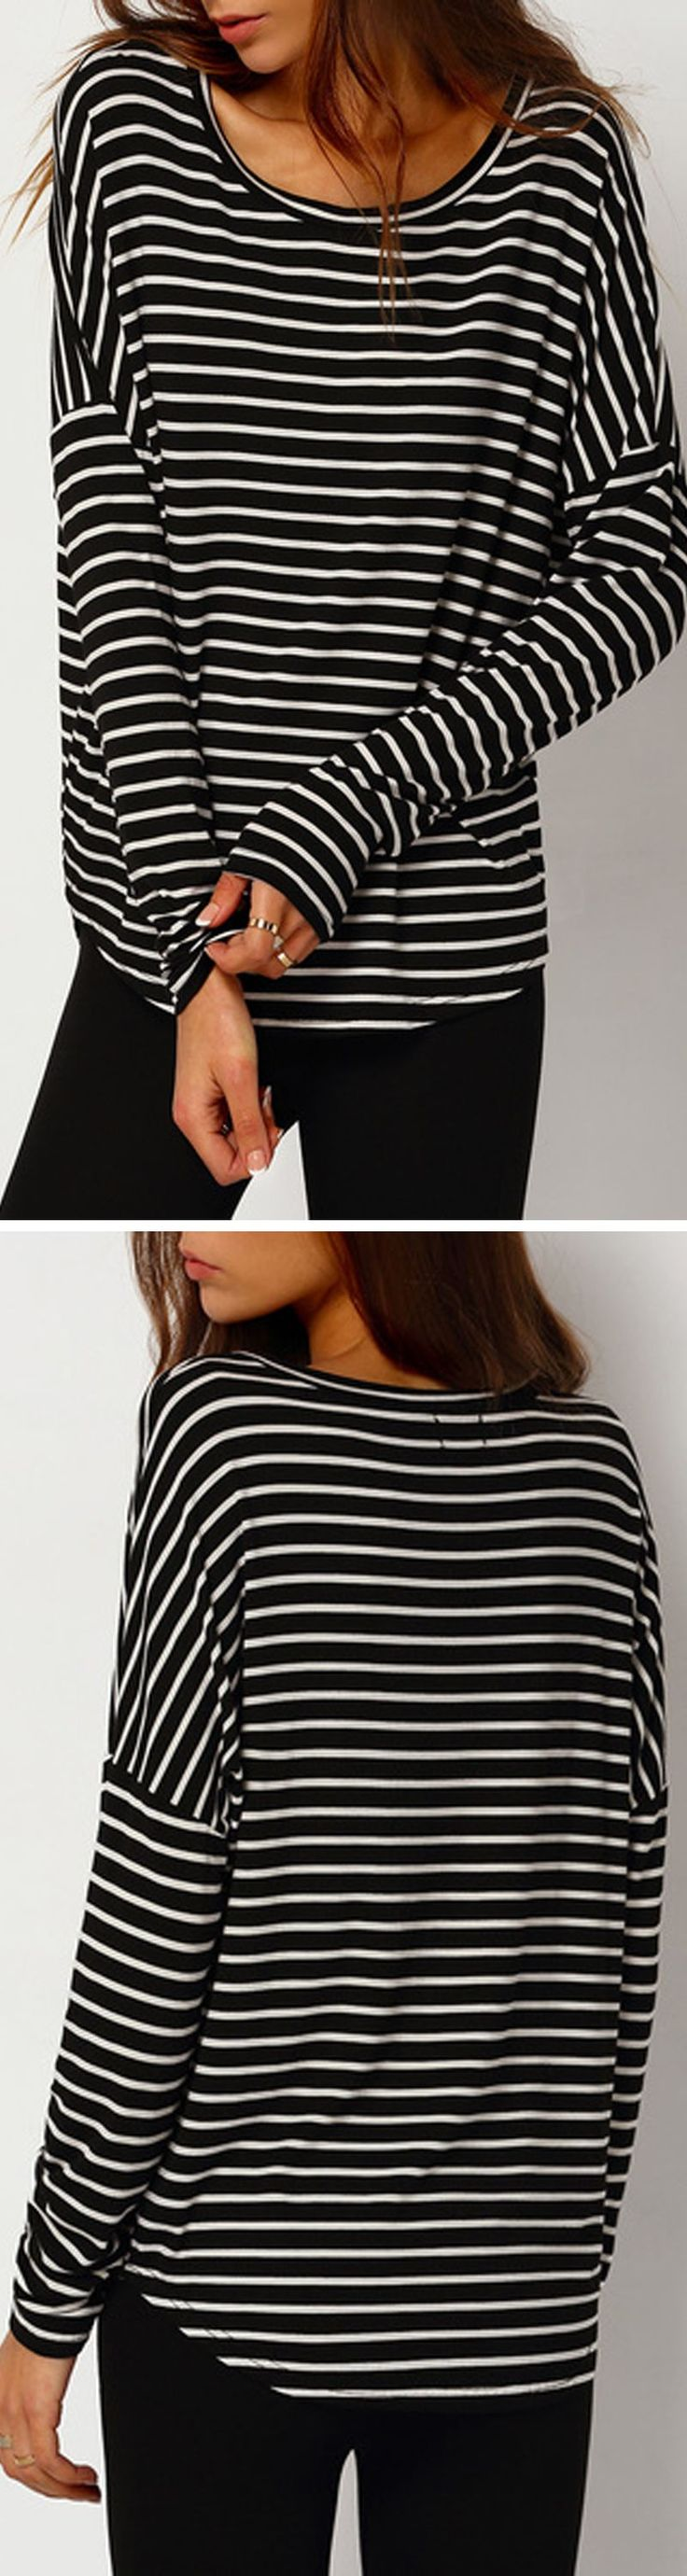 Classic stripe cotton shirt with long sleeve at romwe.com. Nice for spring travel outfit!Click for more women fashion items!